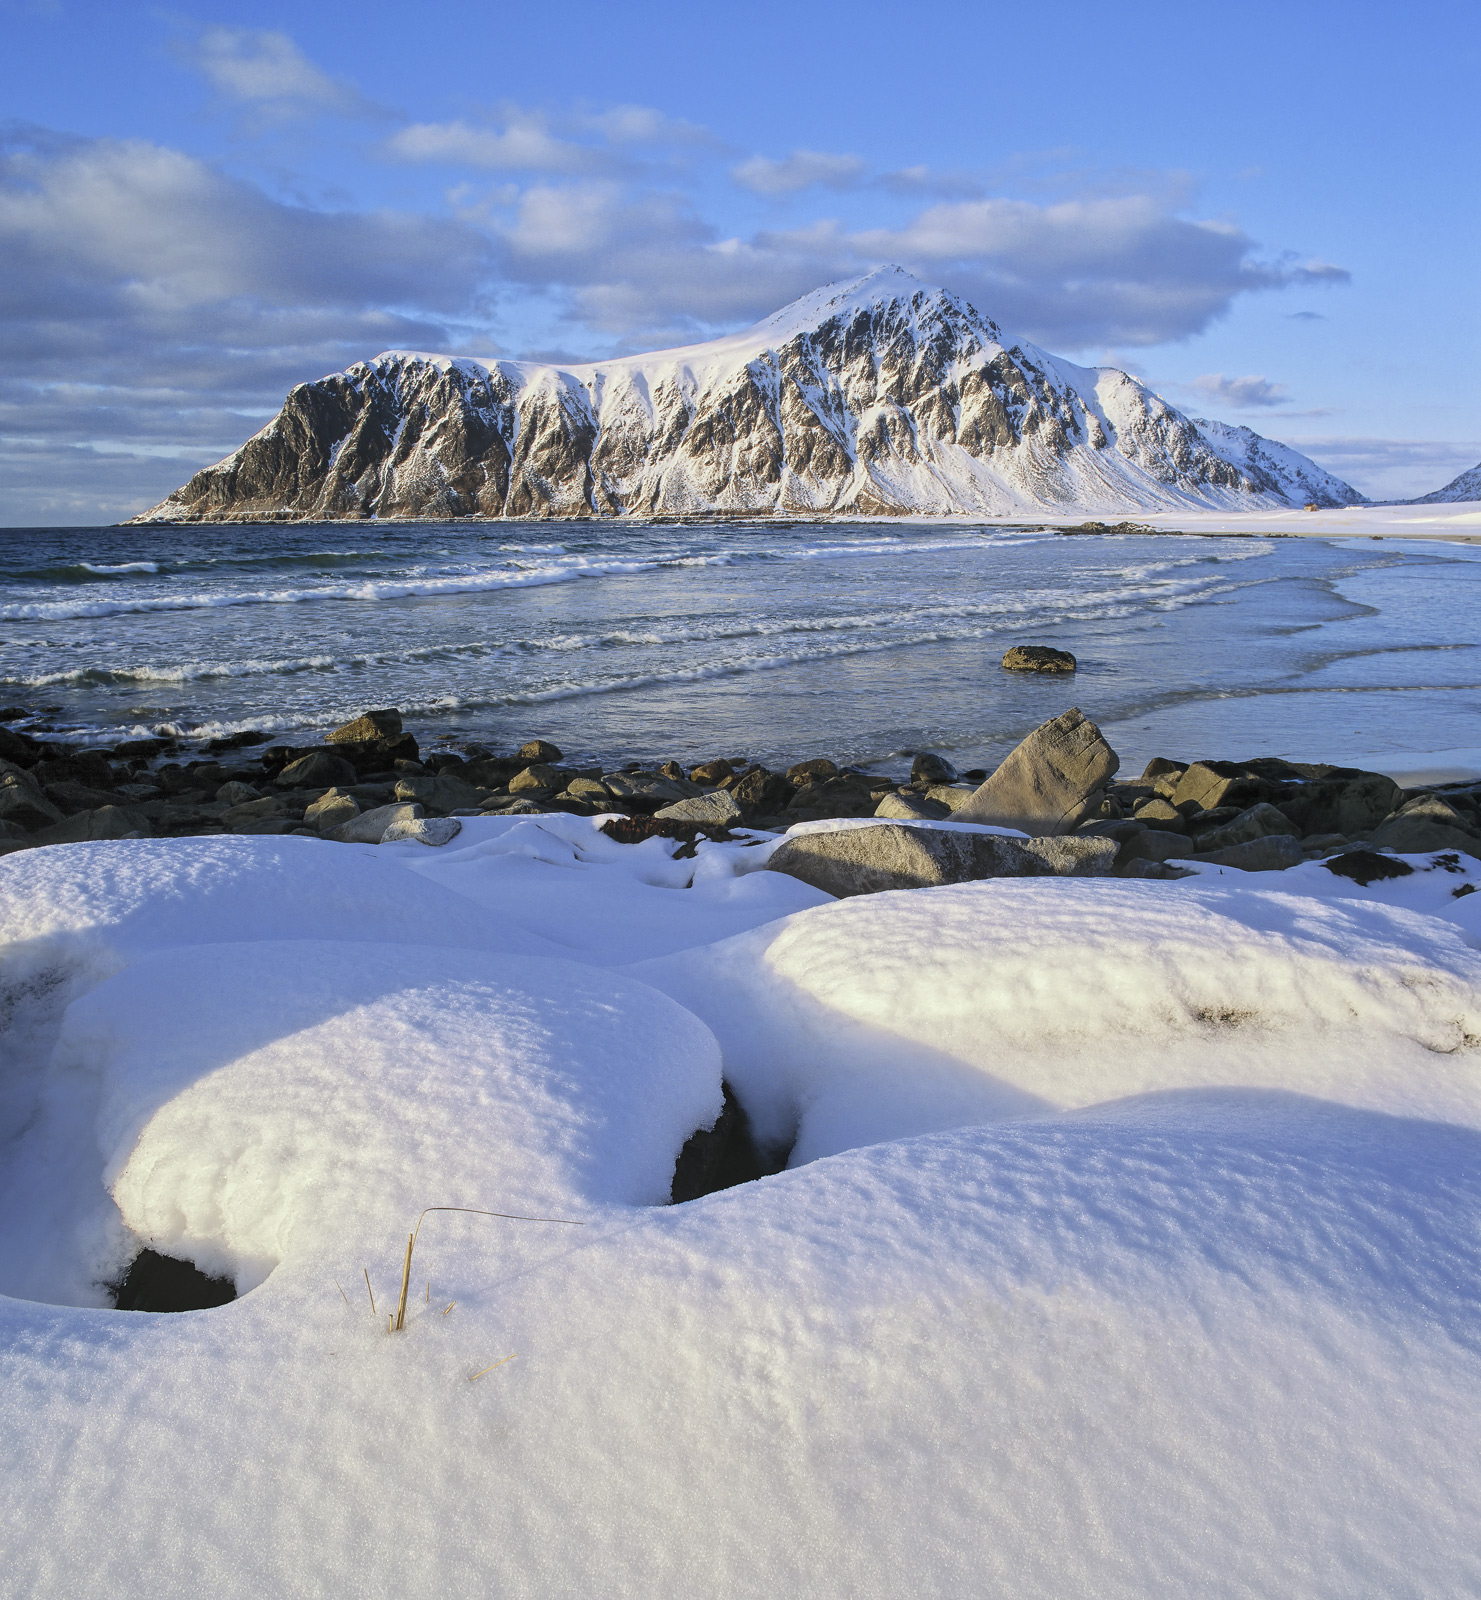 Flakstad Snow Pillows, Flakstad, Lofoten, Norway, gorgeous, angled, sunlight, grazed, pillows, snow, boulders, beach, ba, photo